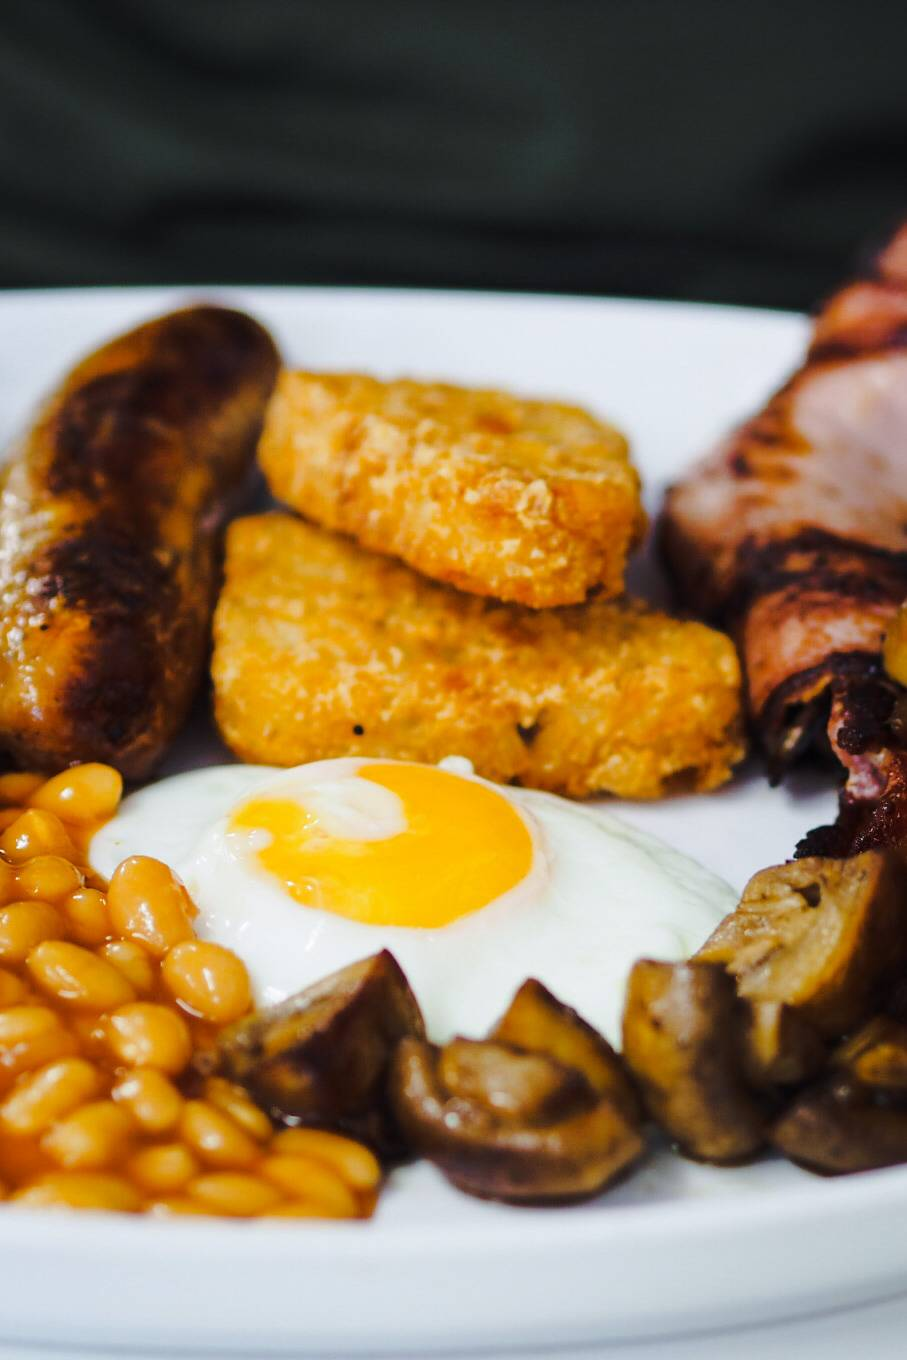 Full English Breakfast at The Super Sausage Cafe - Eat Out to Help out in Milton Keynes